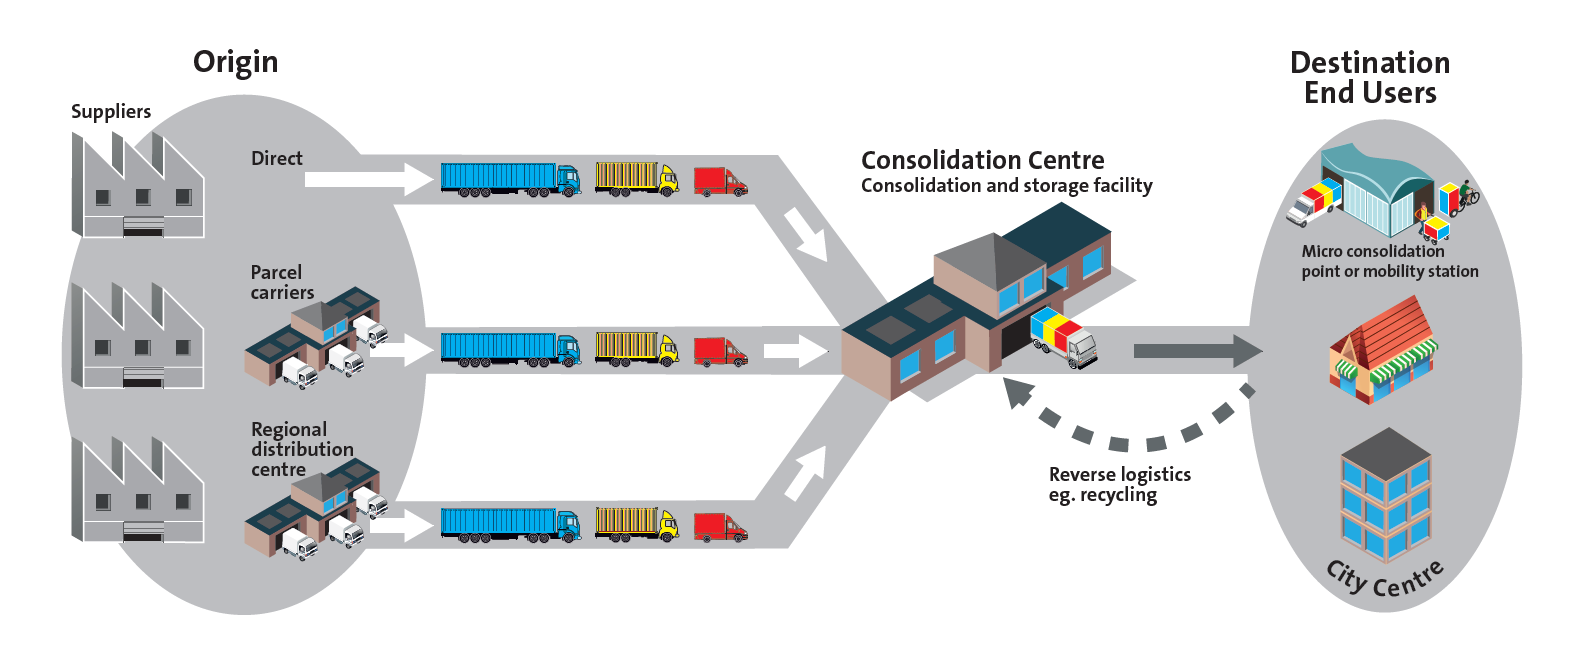 Origin: Suppliers: Direct, Parcel Carriers, Regional Distribution Centre; Consolidation Centre: Consolidation and Storage Facility; Destination End Users: Micro consolidation point or mobility station, City Centre; Reverse logistic: eg. recycling